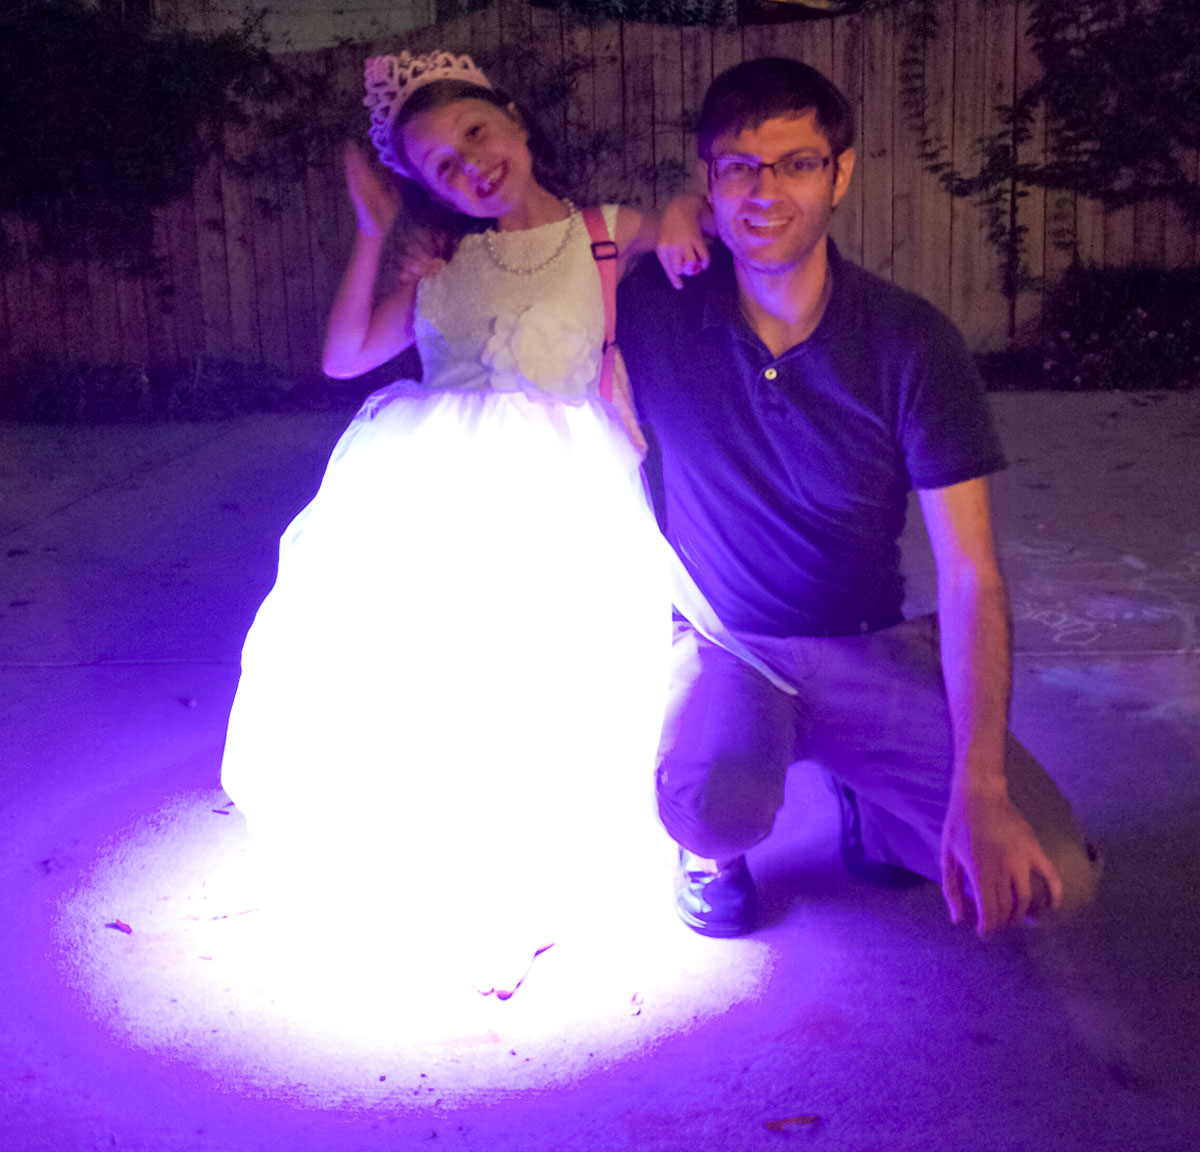 Diy Light Up Led Dress With Color Changing Rgb Leds